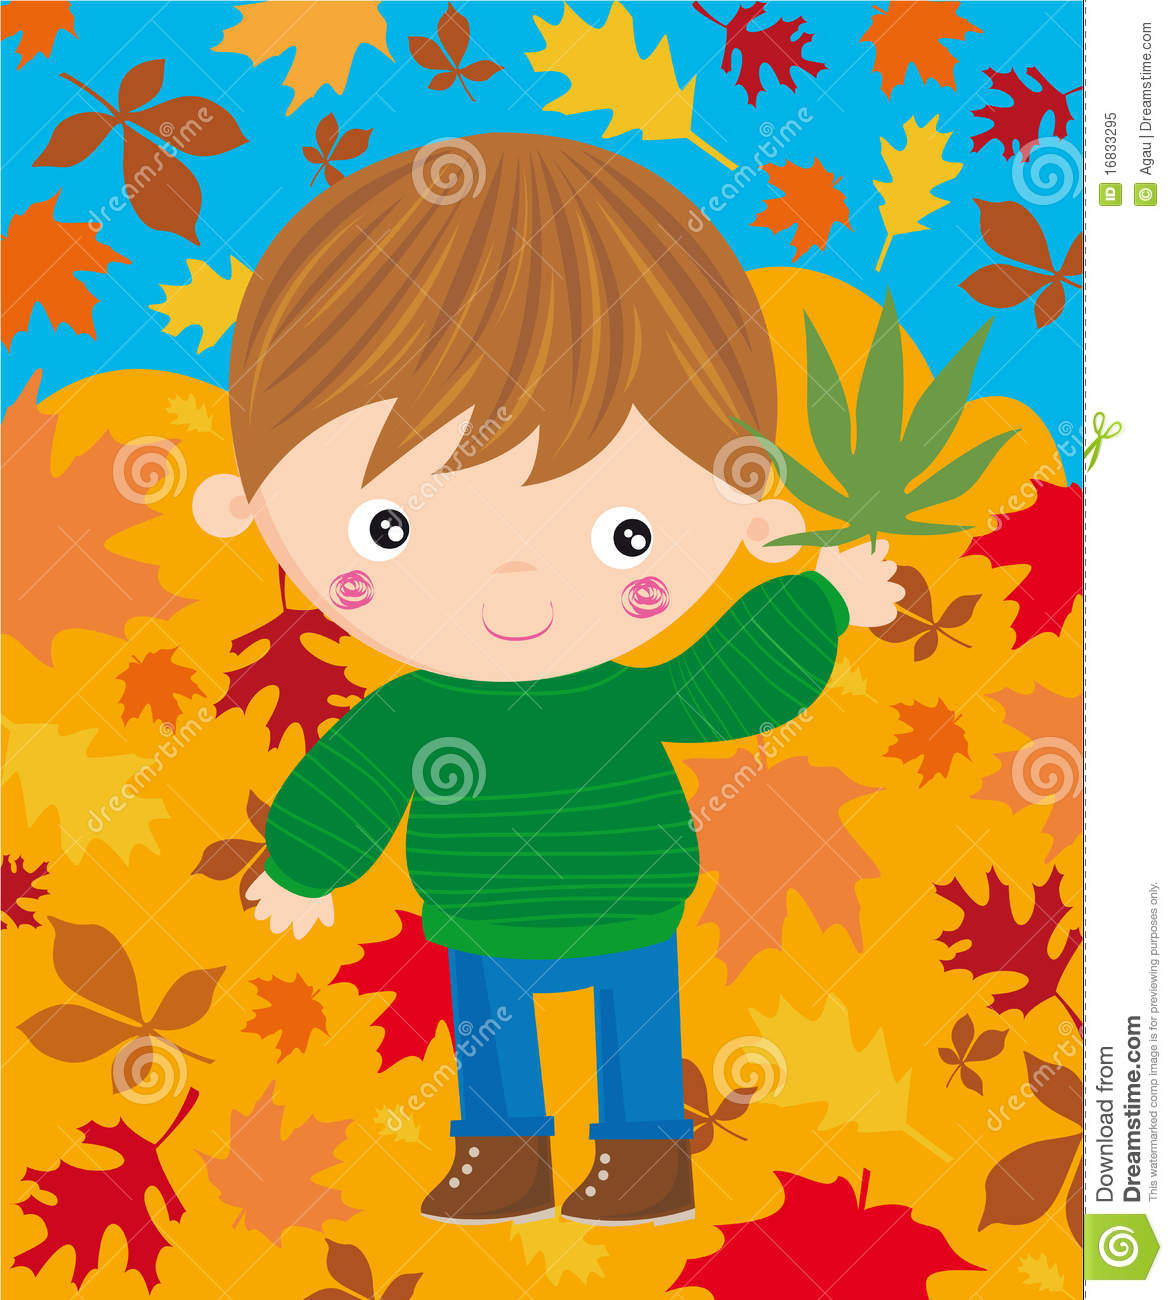 Fall Animated Pictures Images amp Photos  Photobucket